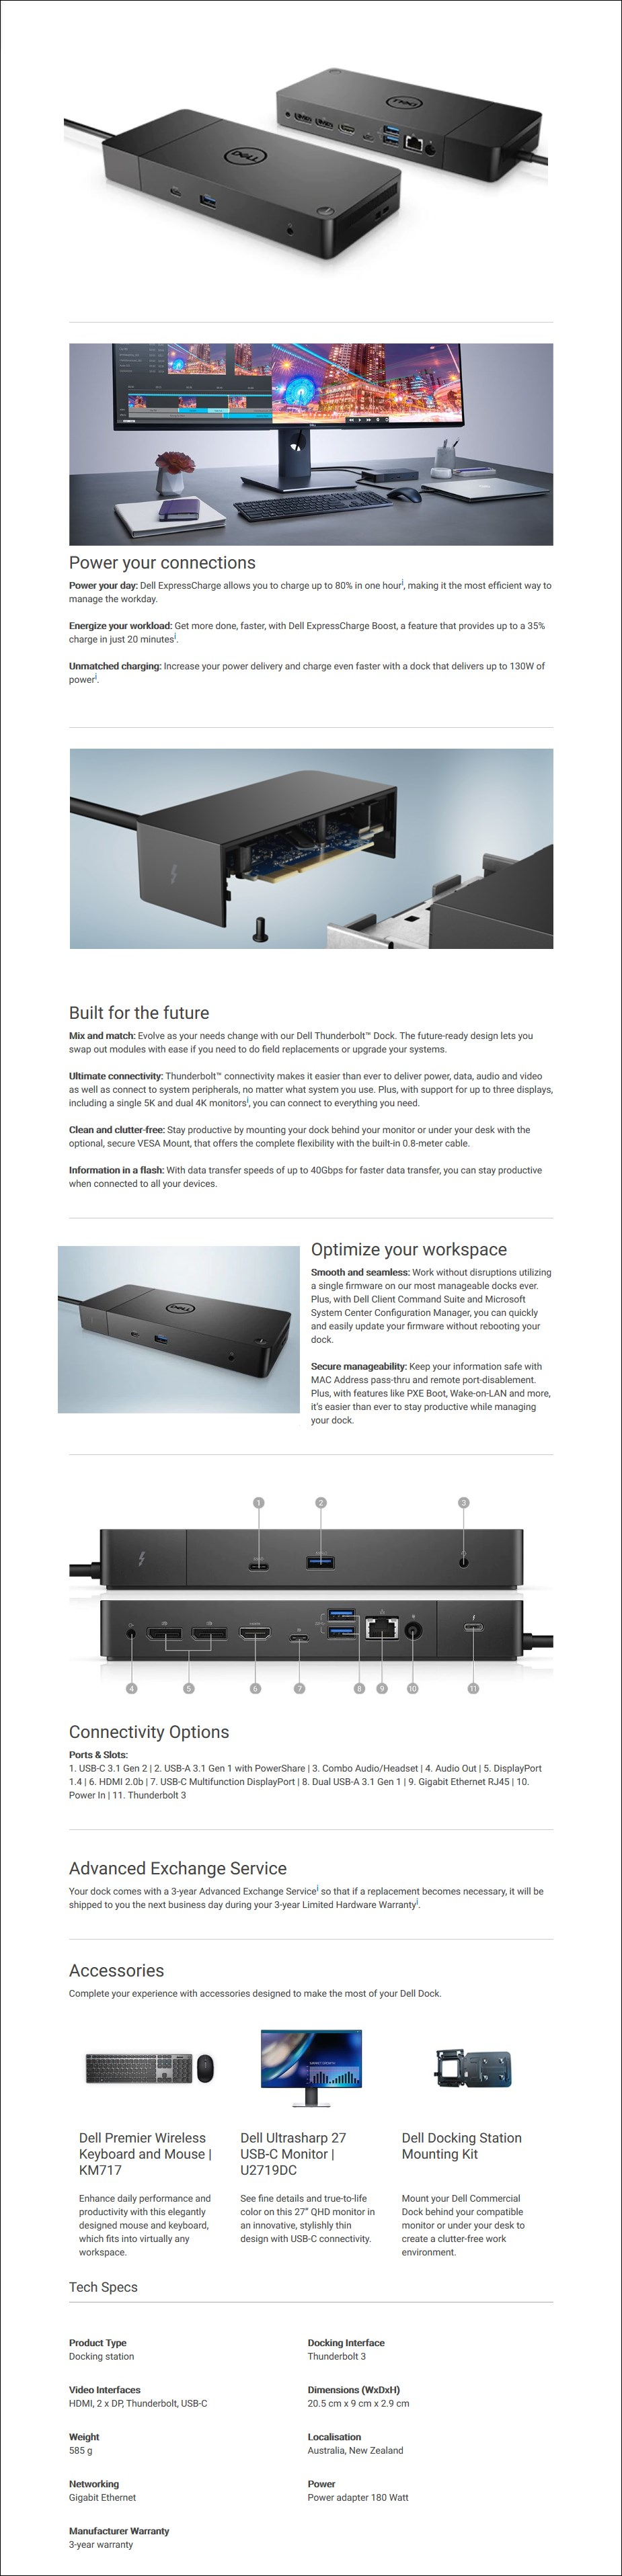 Dell WD19TB USB Type-C/Thunderbolt Docking Station - Overview 1